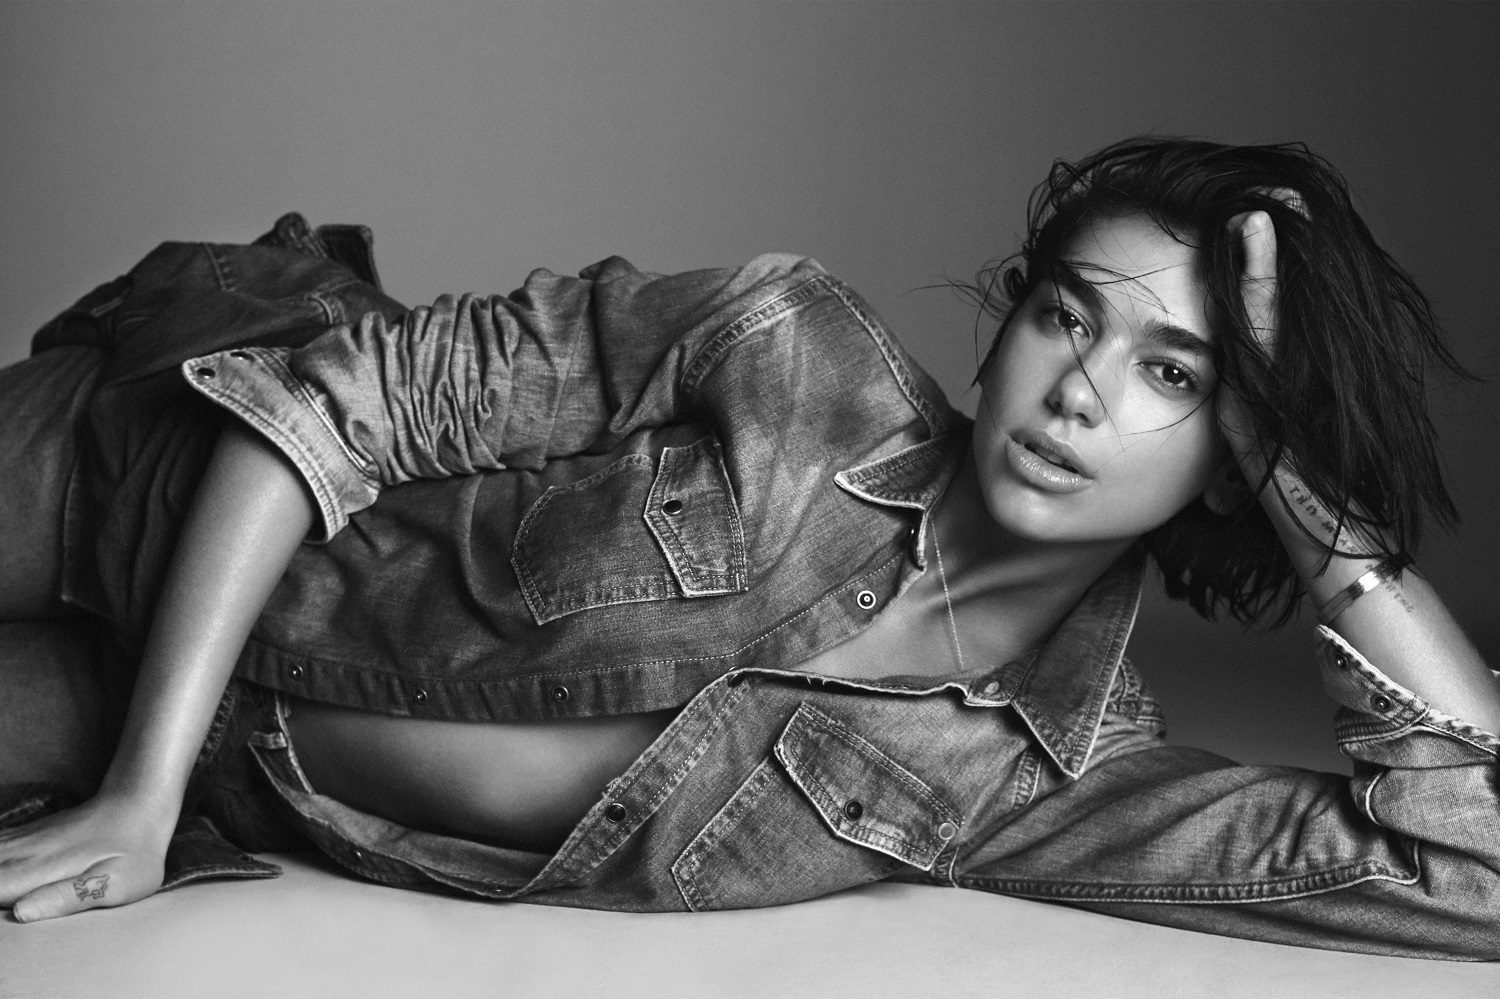 Dua Lipa BlackWhite Wallpaper - Dua Lipa Net Worth, Pics, Wallpapers, Career and Biography